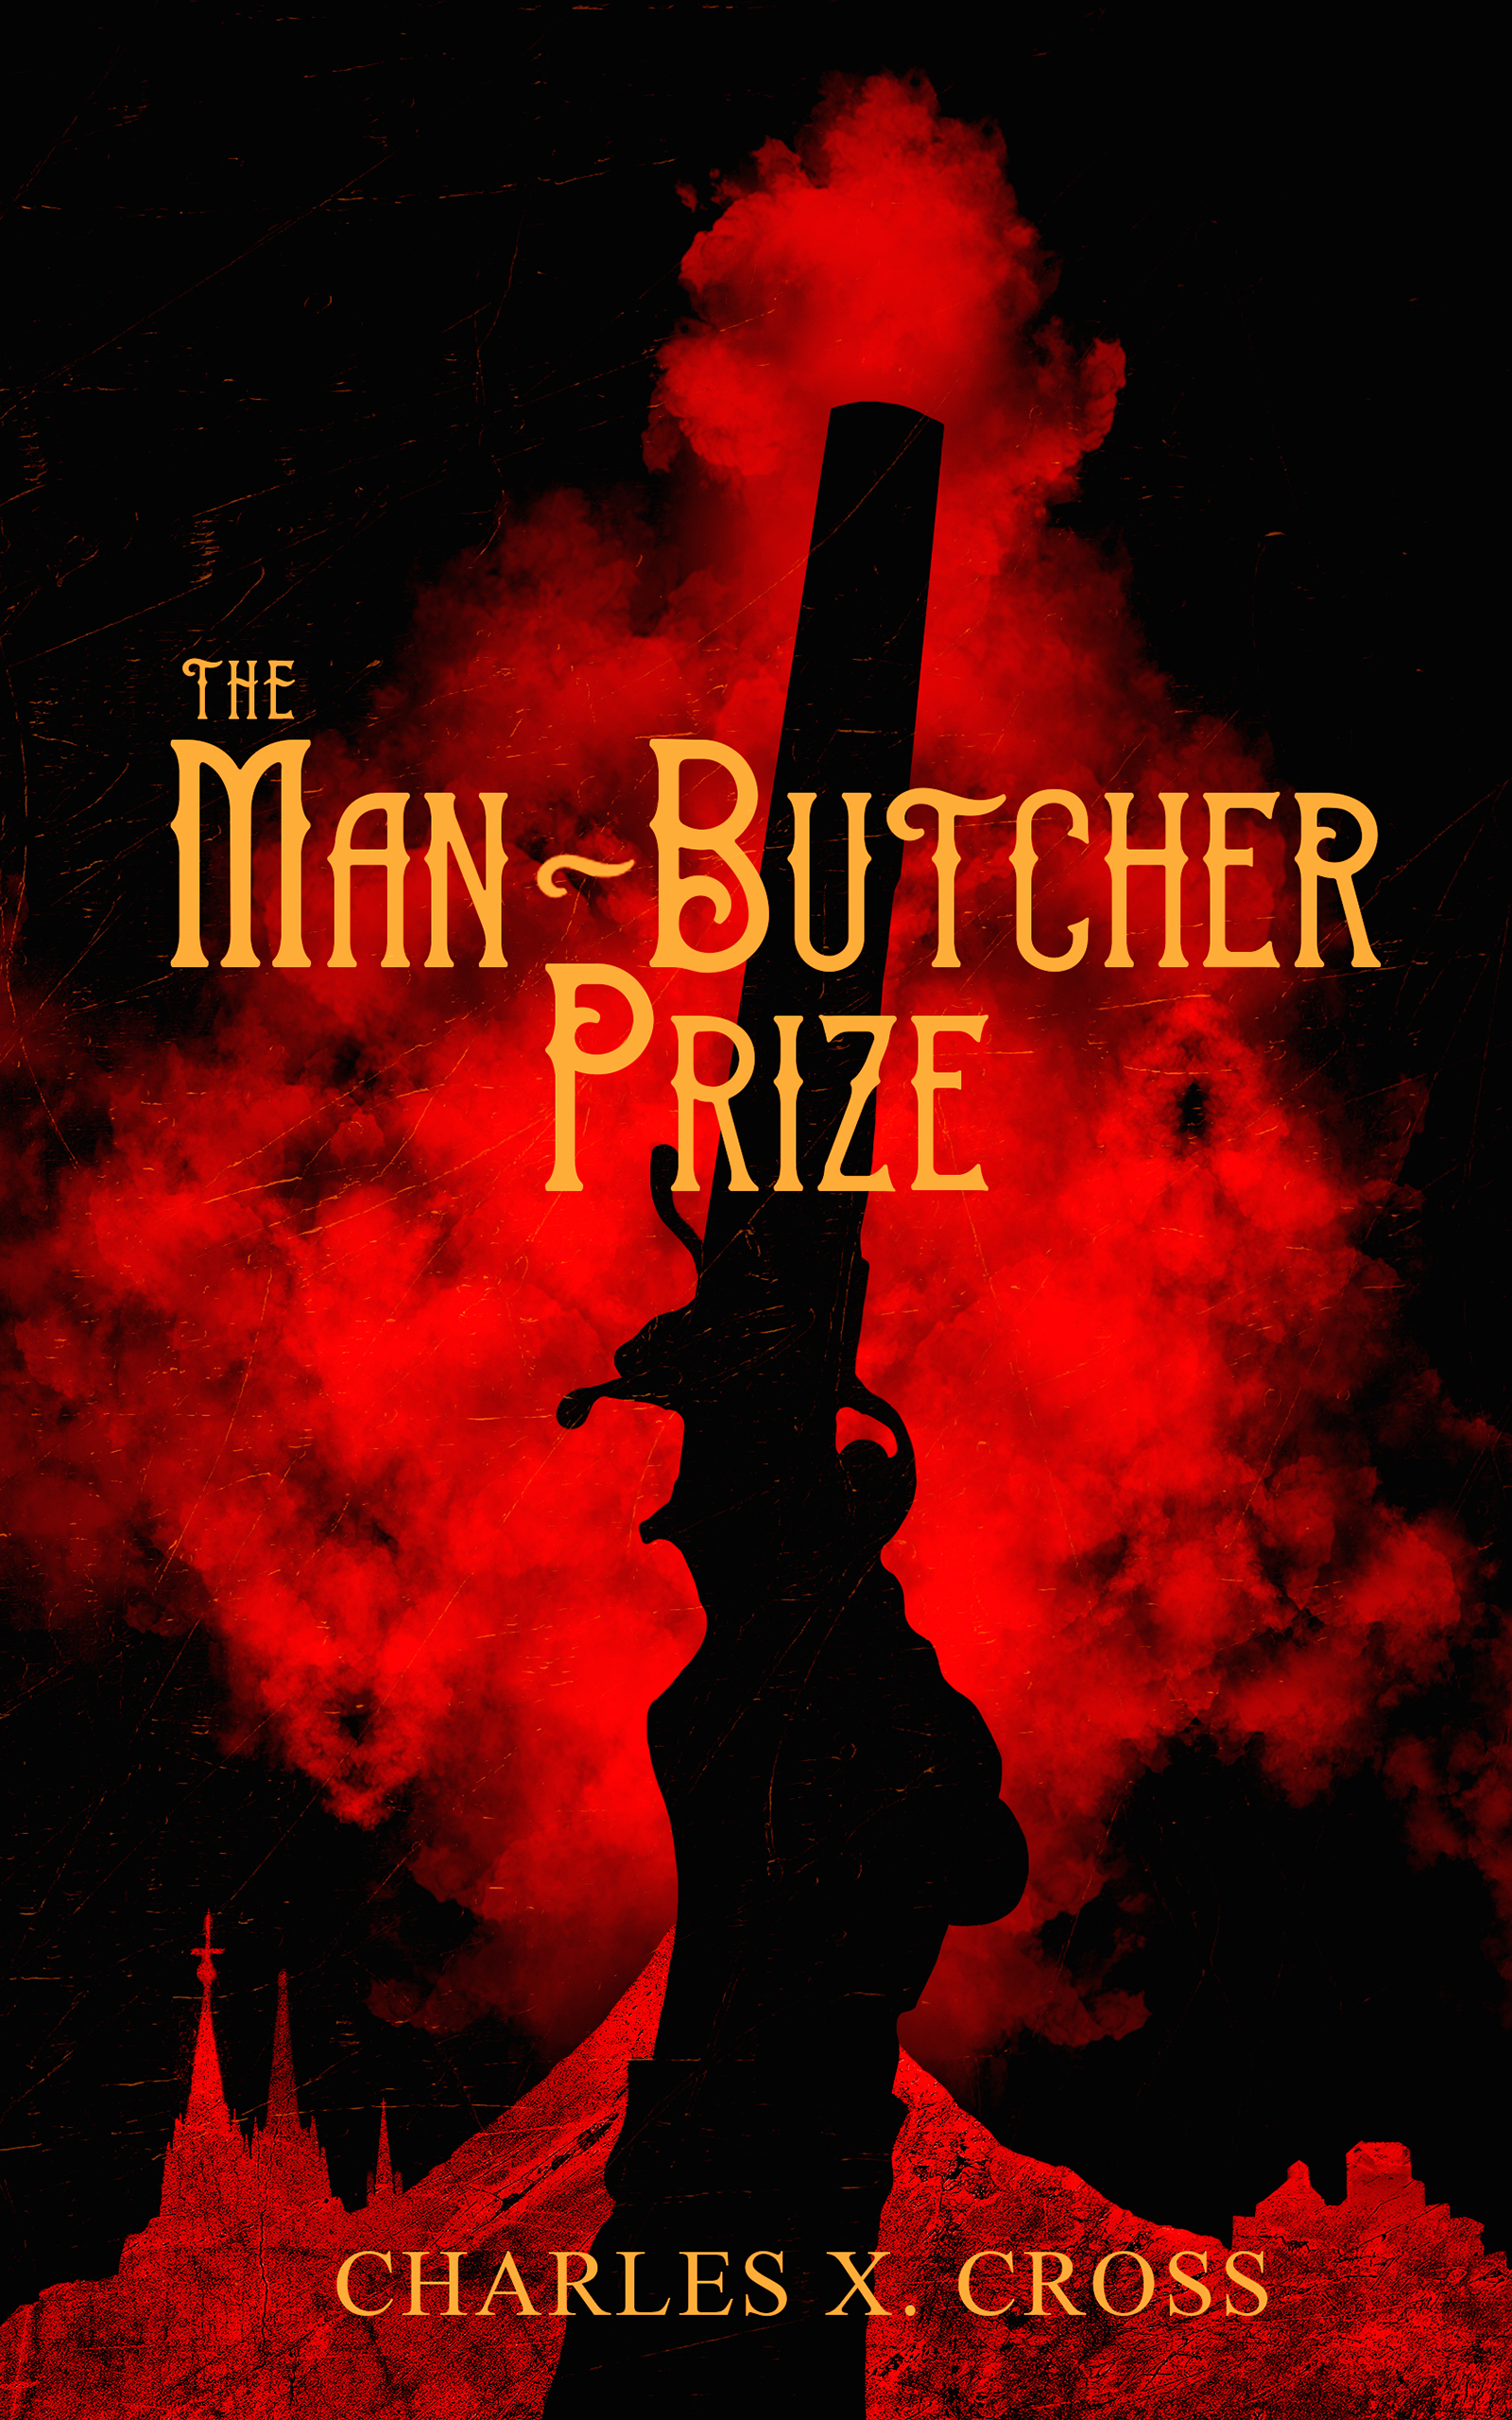 The Man-Butcher Prize (Crooked Empires Vol: 1)